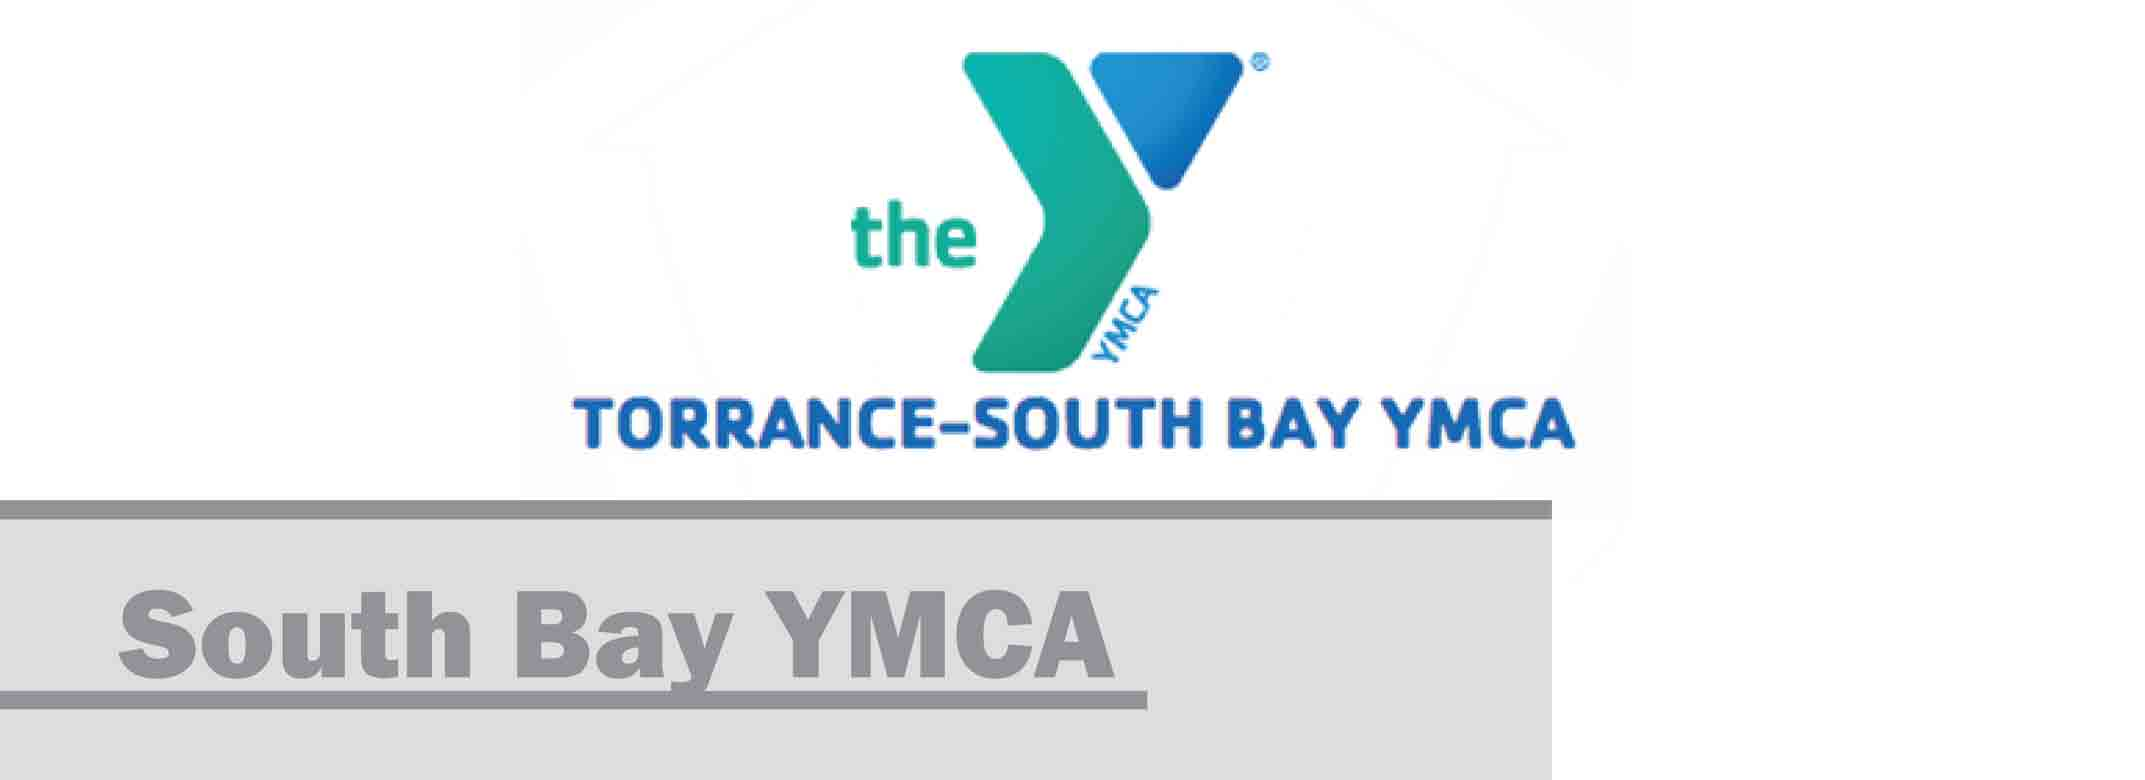 southbayymcamainimage